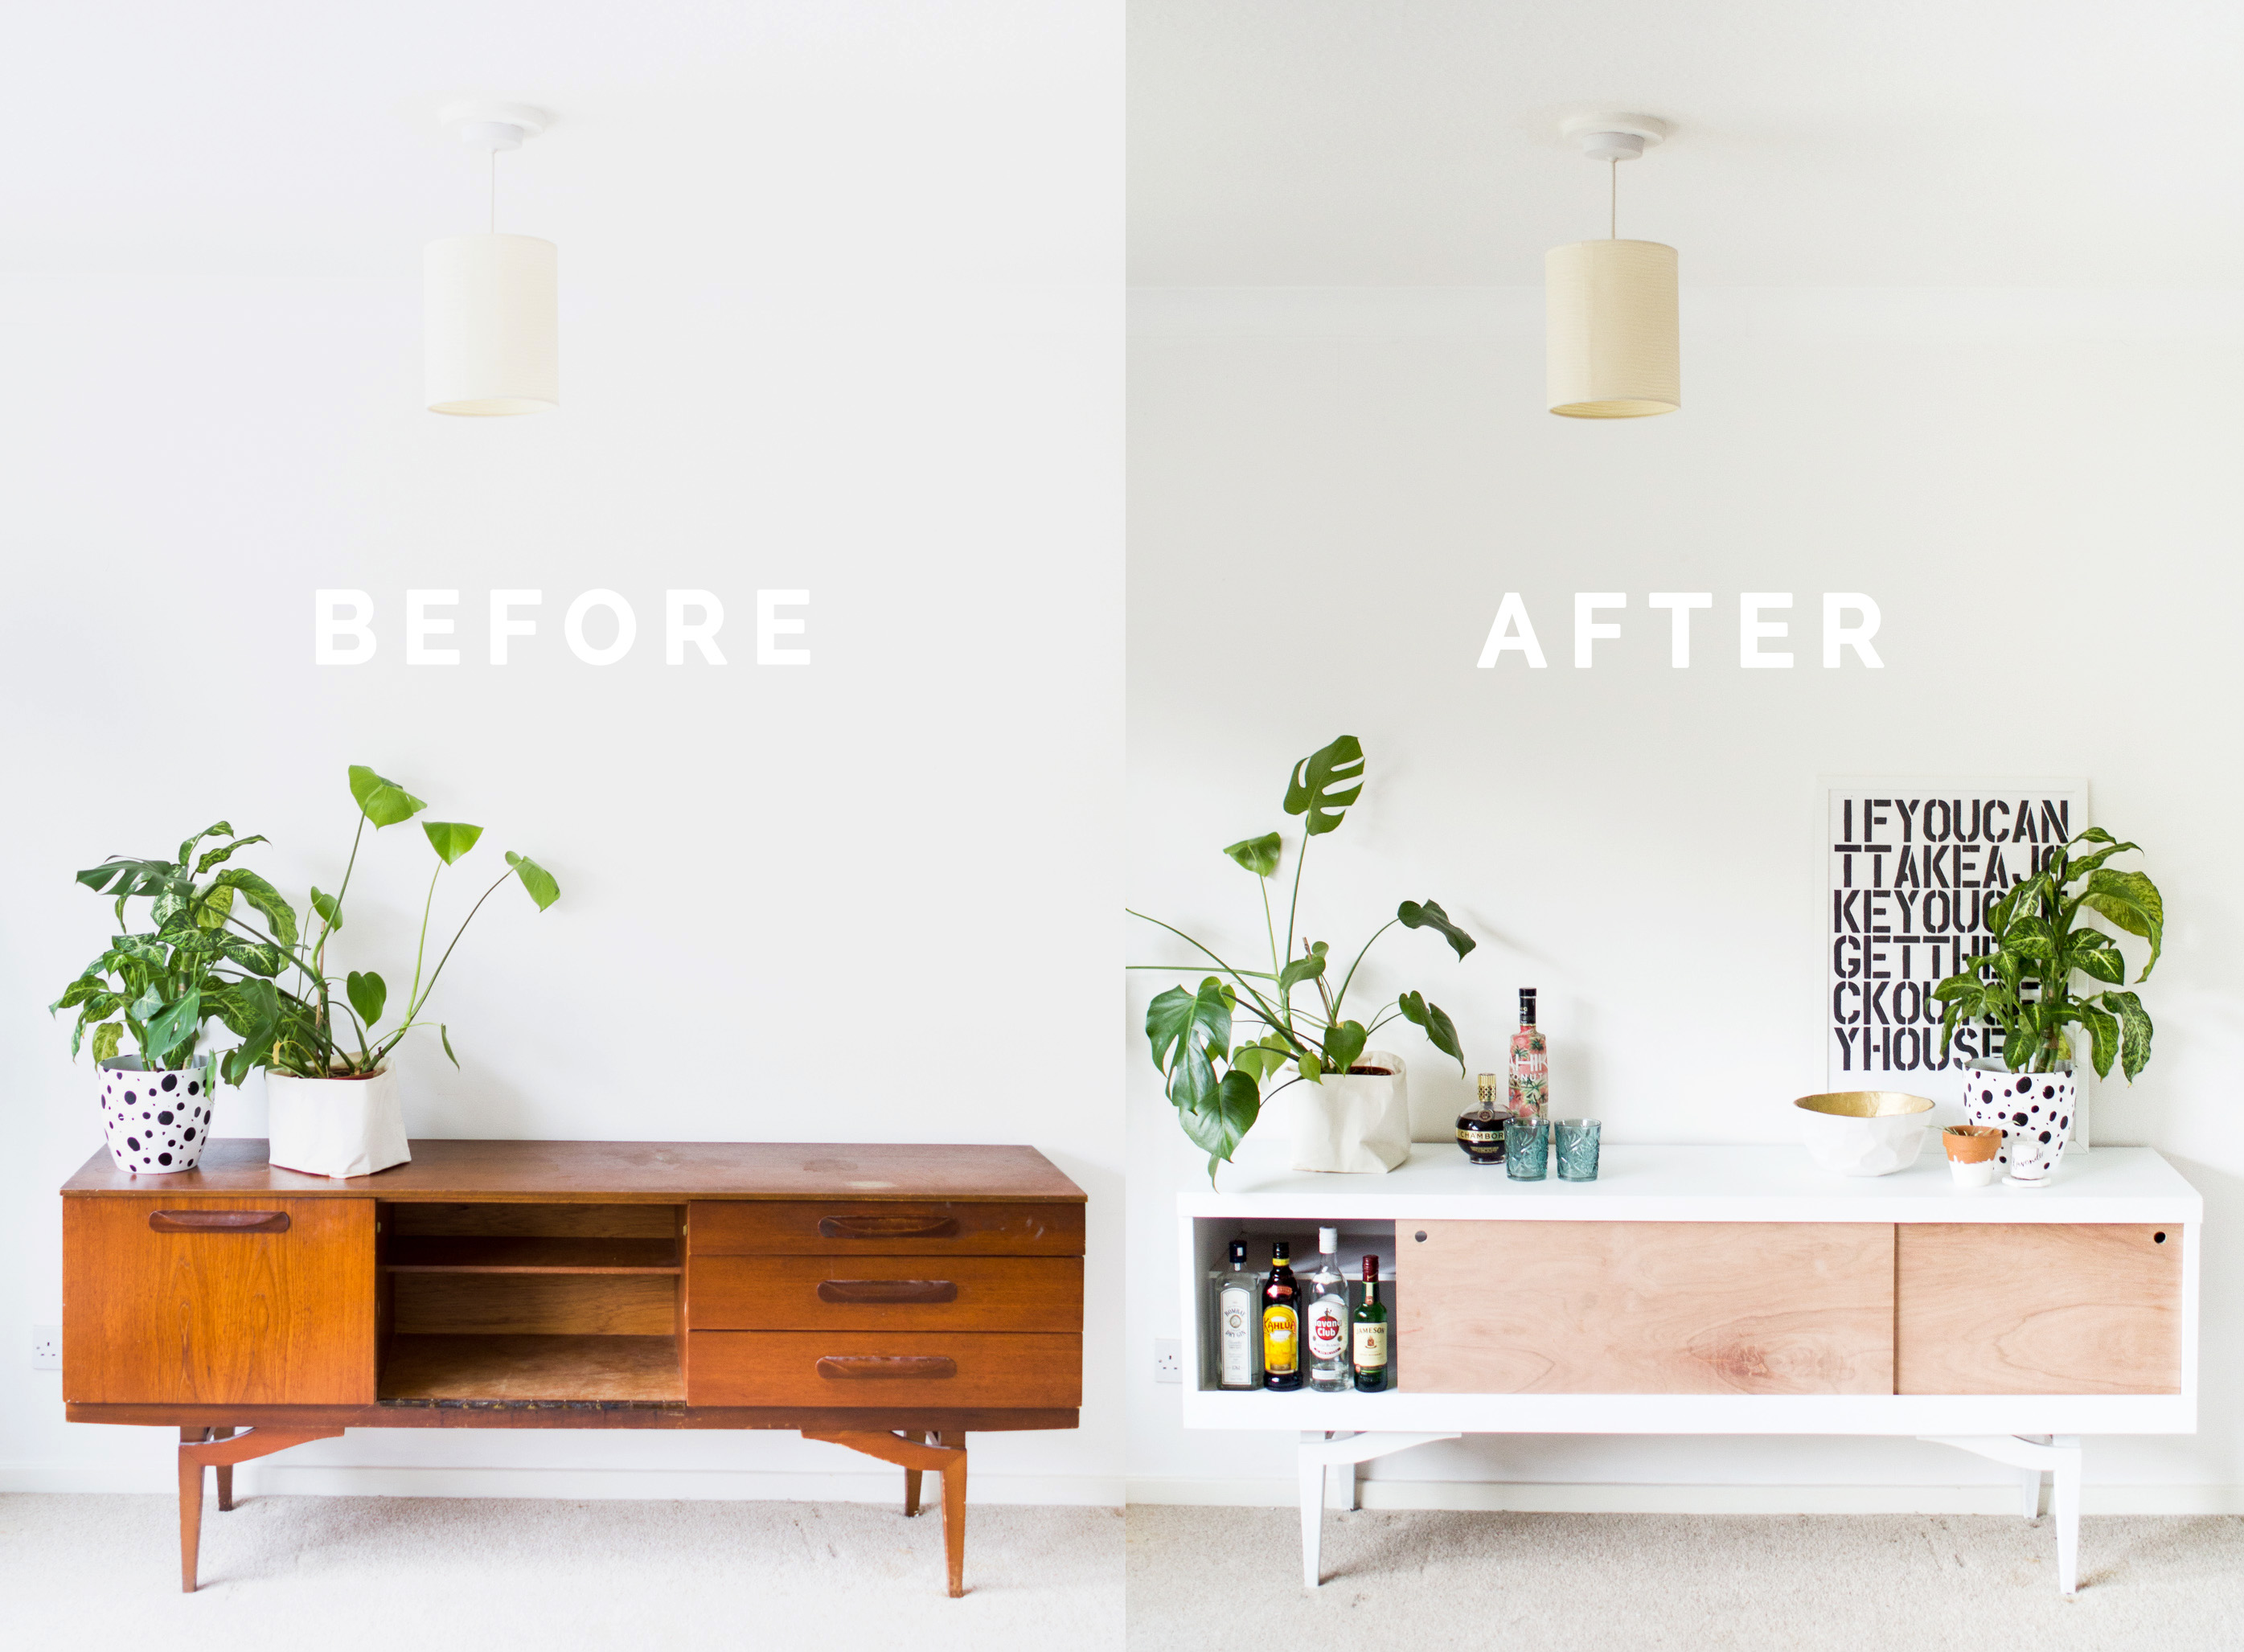 DIY Sideboard Makeover styled before and after landscape